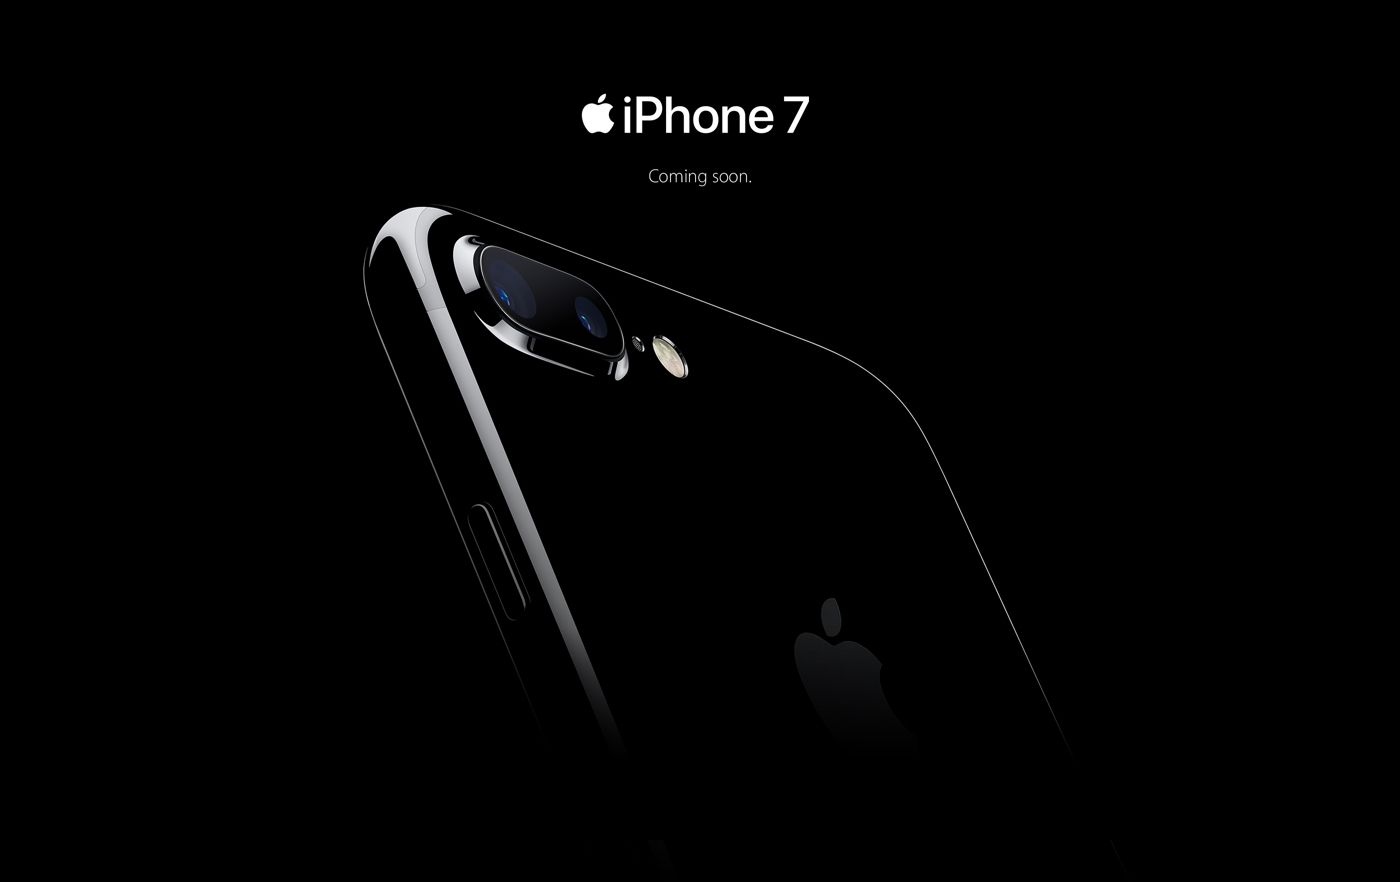 Iphone 7 Store Online - Buy Iphone 7 Products Online at Best Price in India | Flipkart.com